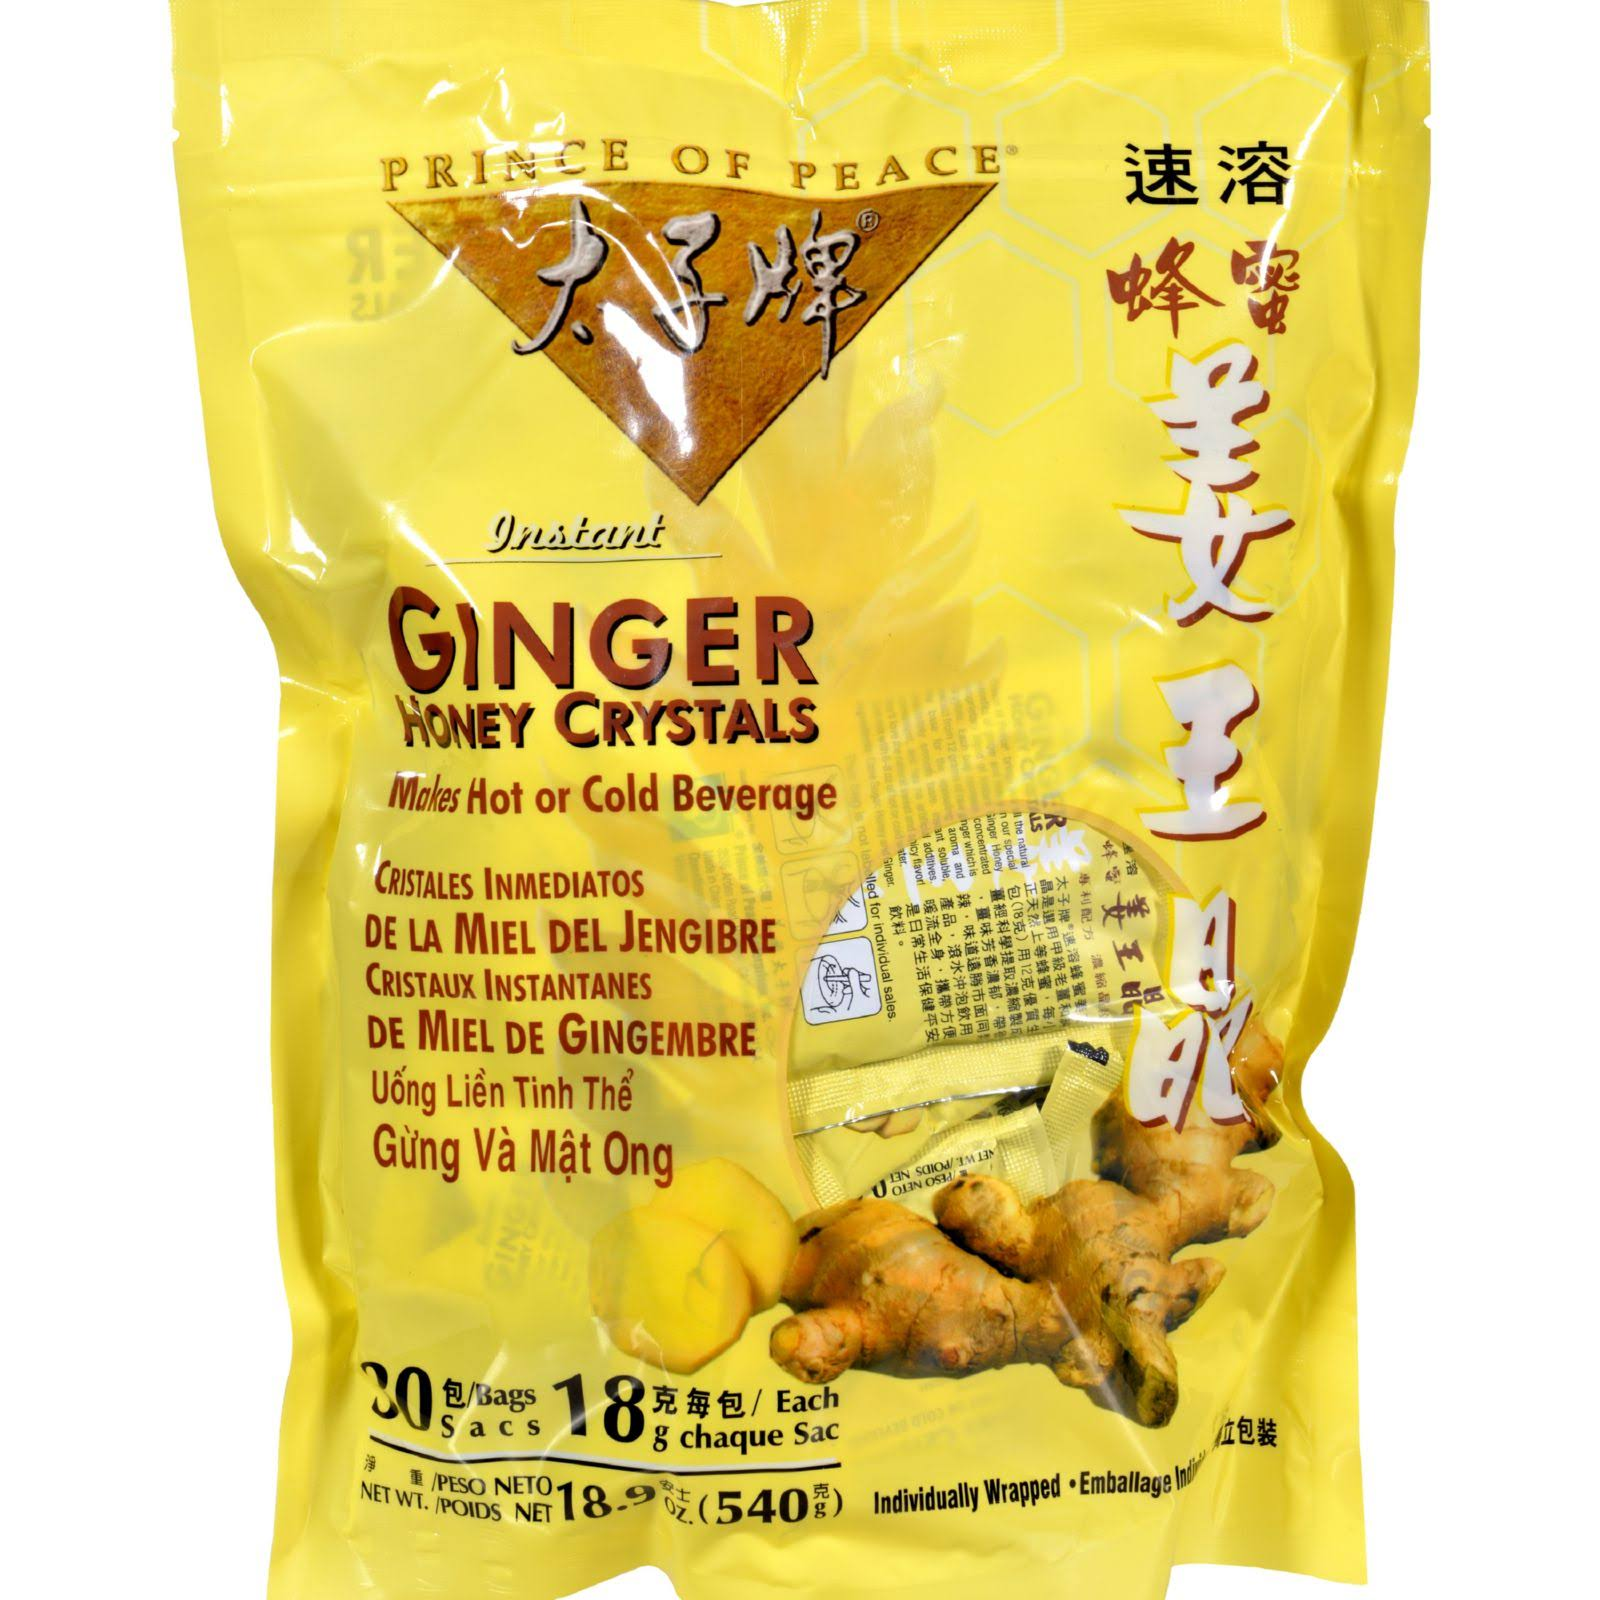 Prince of Peace Ginger Honey Crystals - 30 Packet, 540g